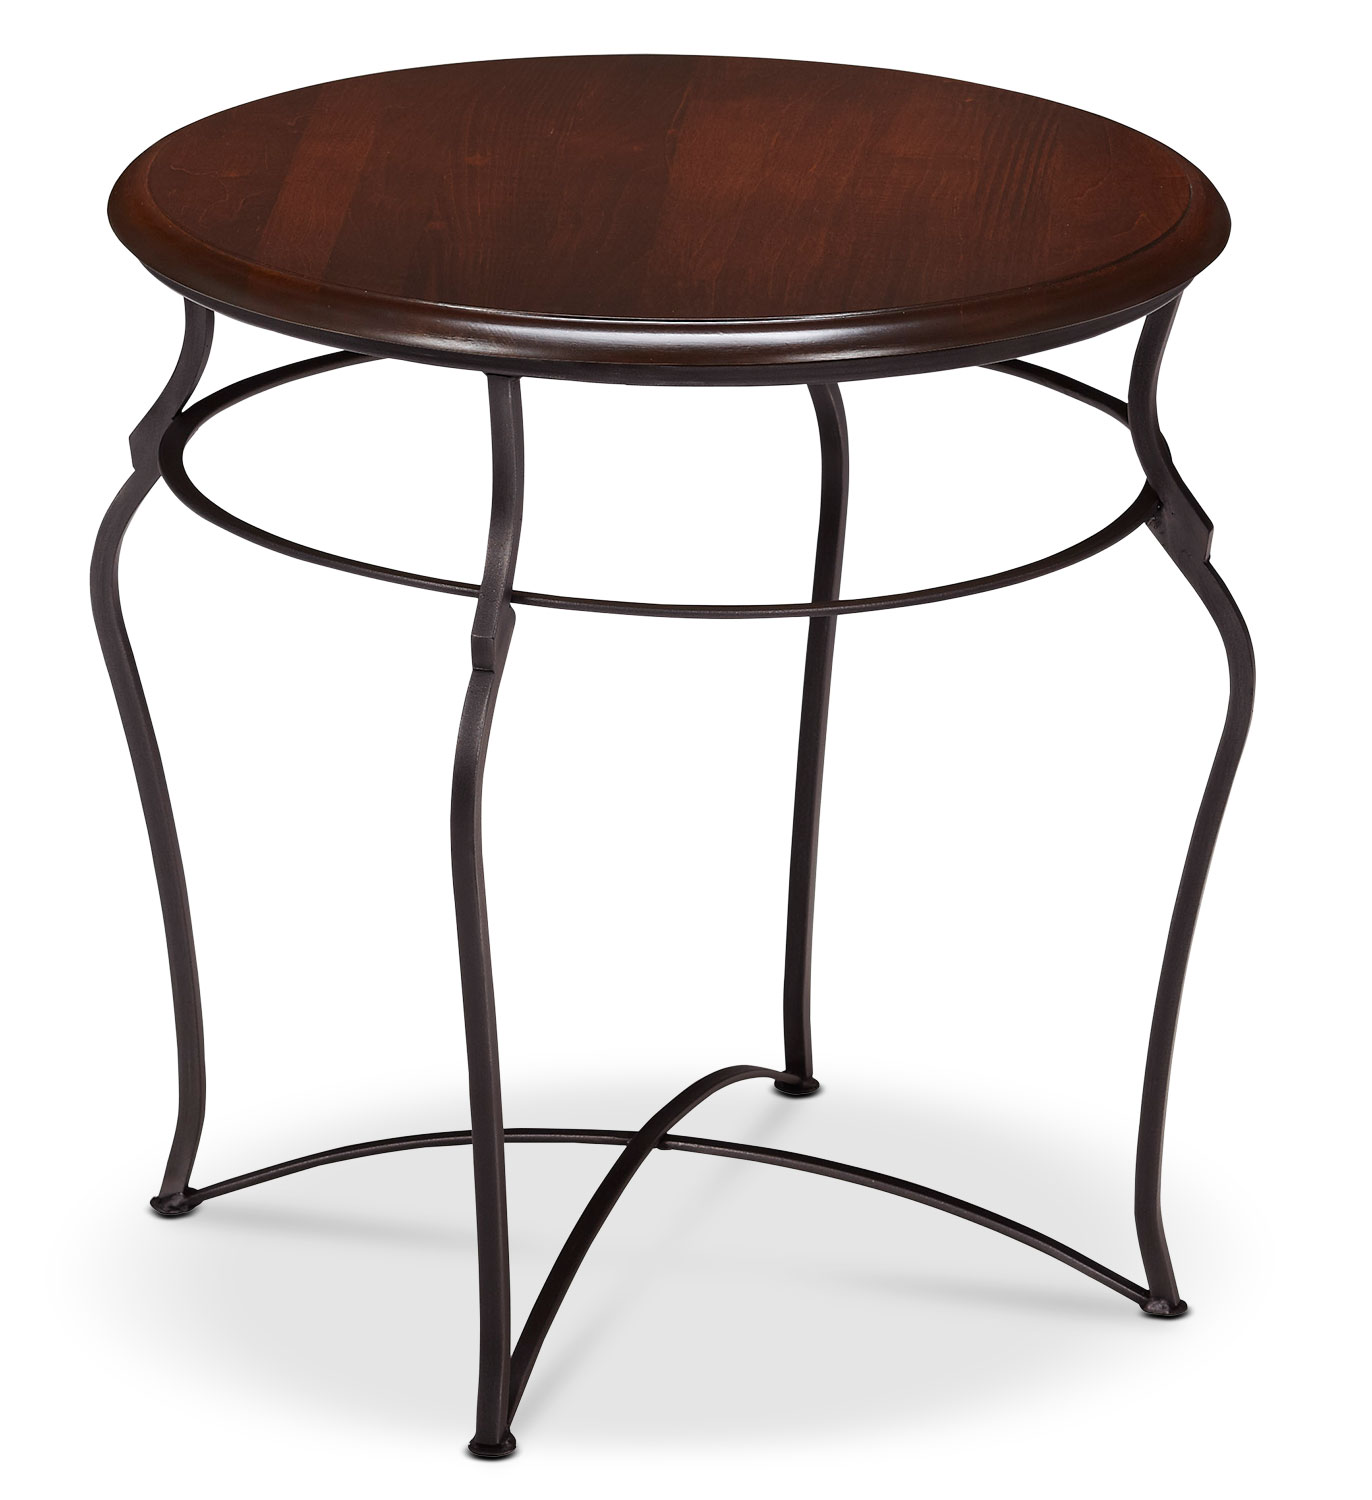 Accent and Occasional Furniture - Adele End Table - Brown Cherry with Black Base